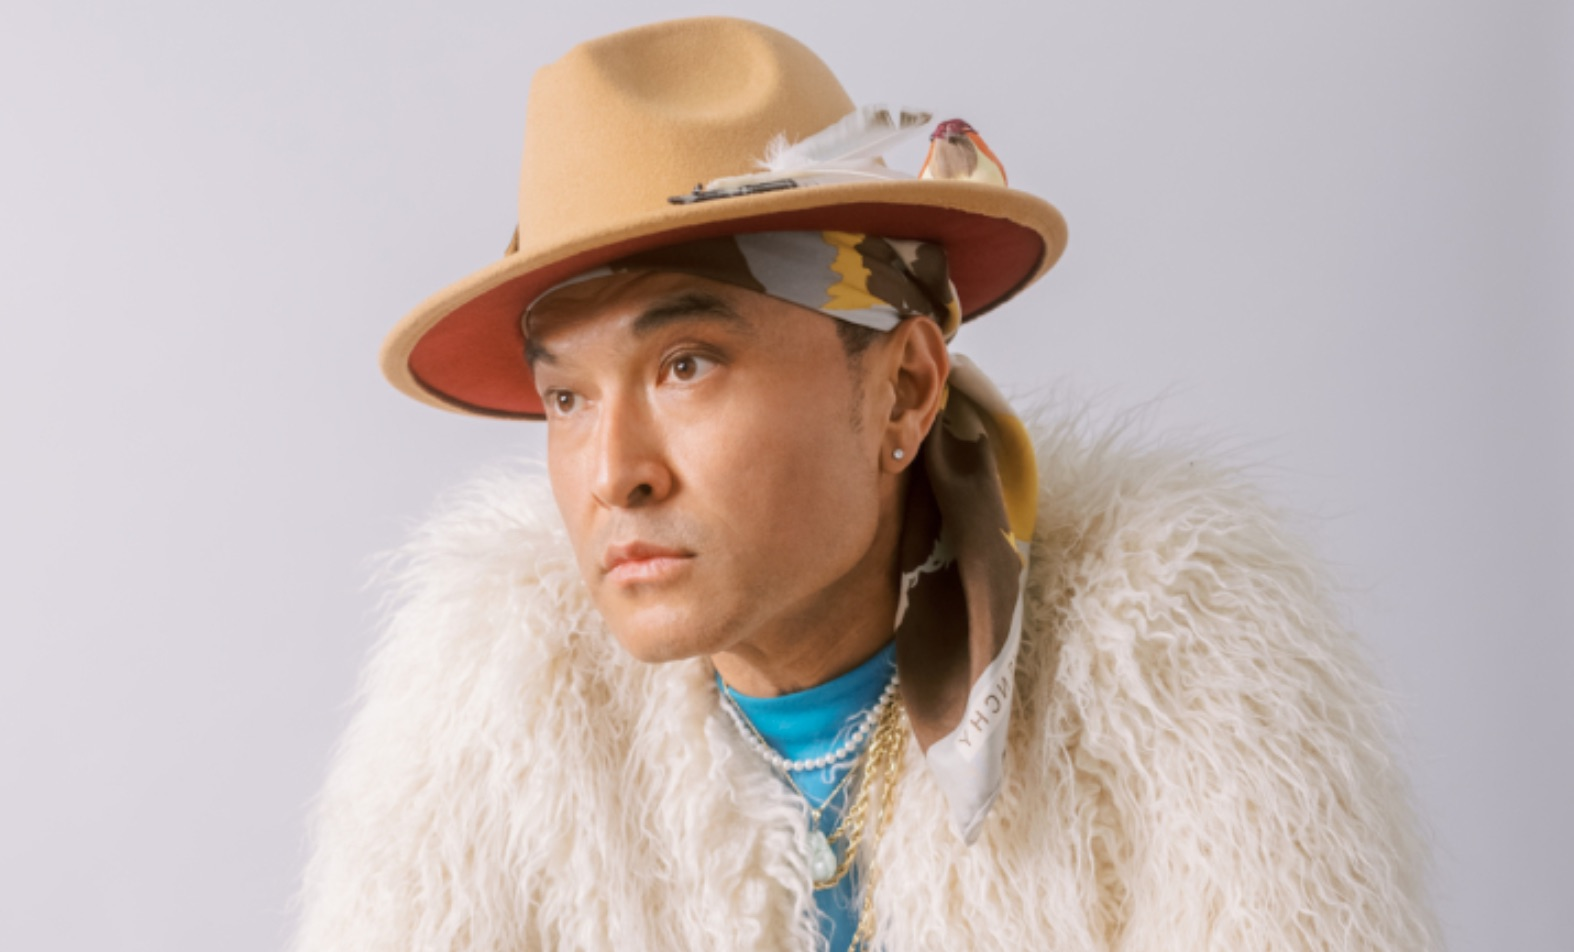 www.berkeleyside.org: Talking to Lyrics Born and why he is fighting AAPI hate through his music